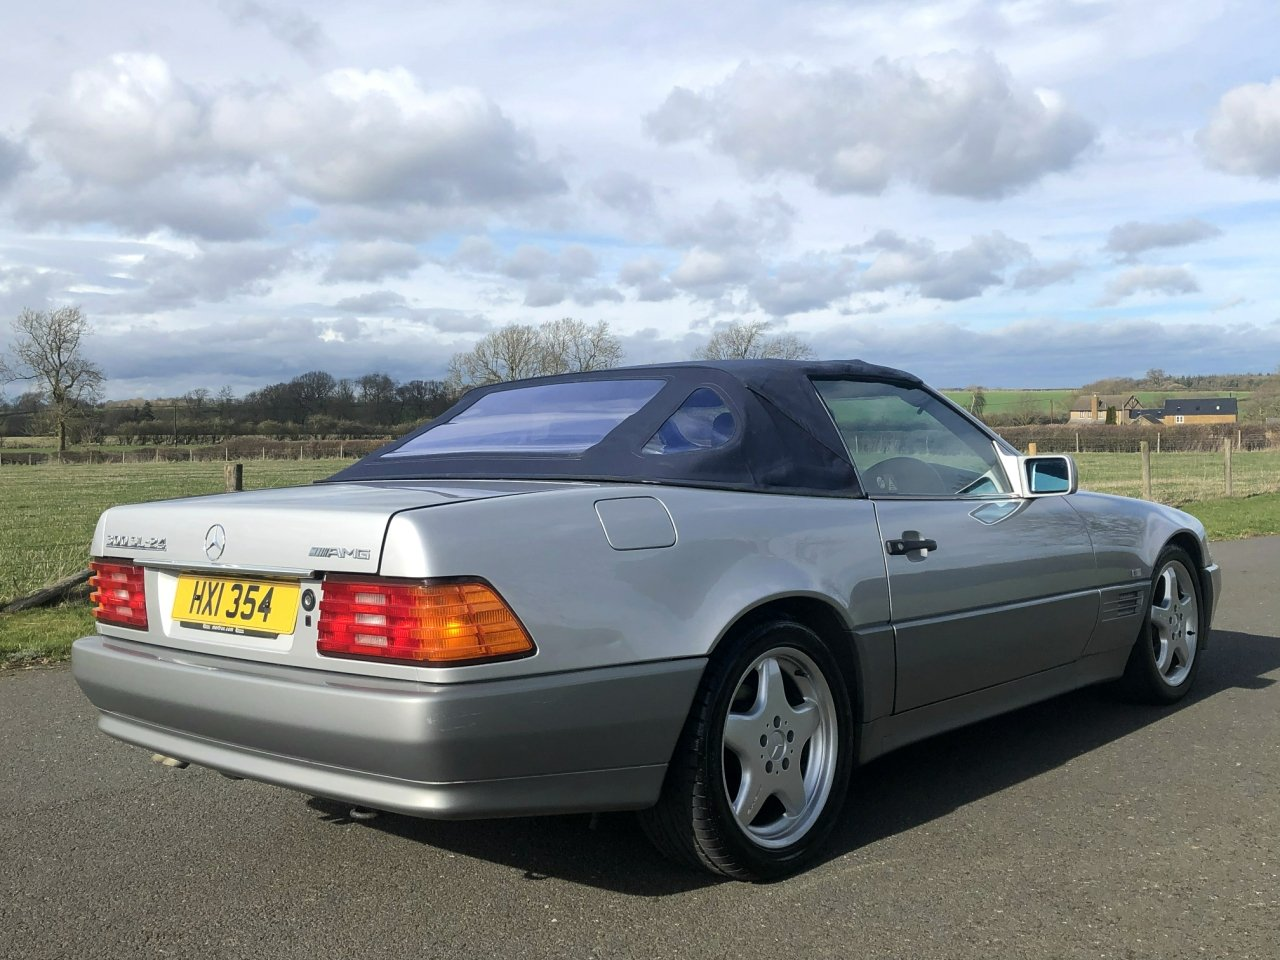 1990 Mercedes Benz 300 SL-24V R129 Automatic For Sale (picture 4 of 6)